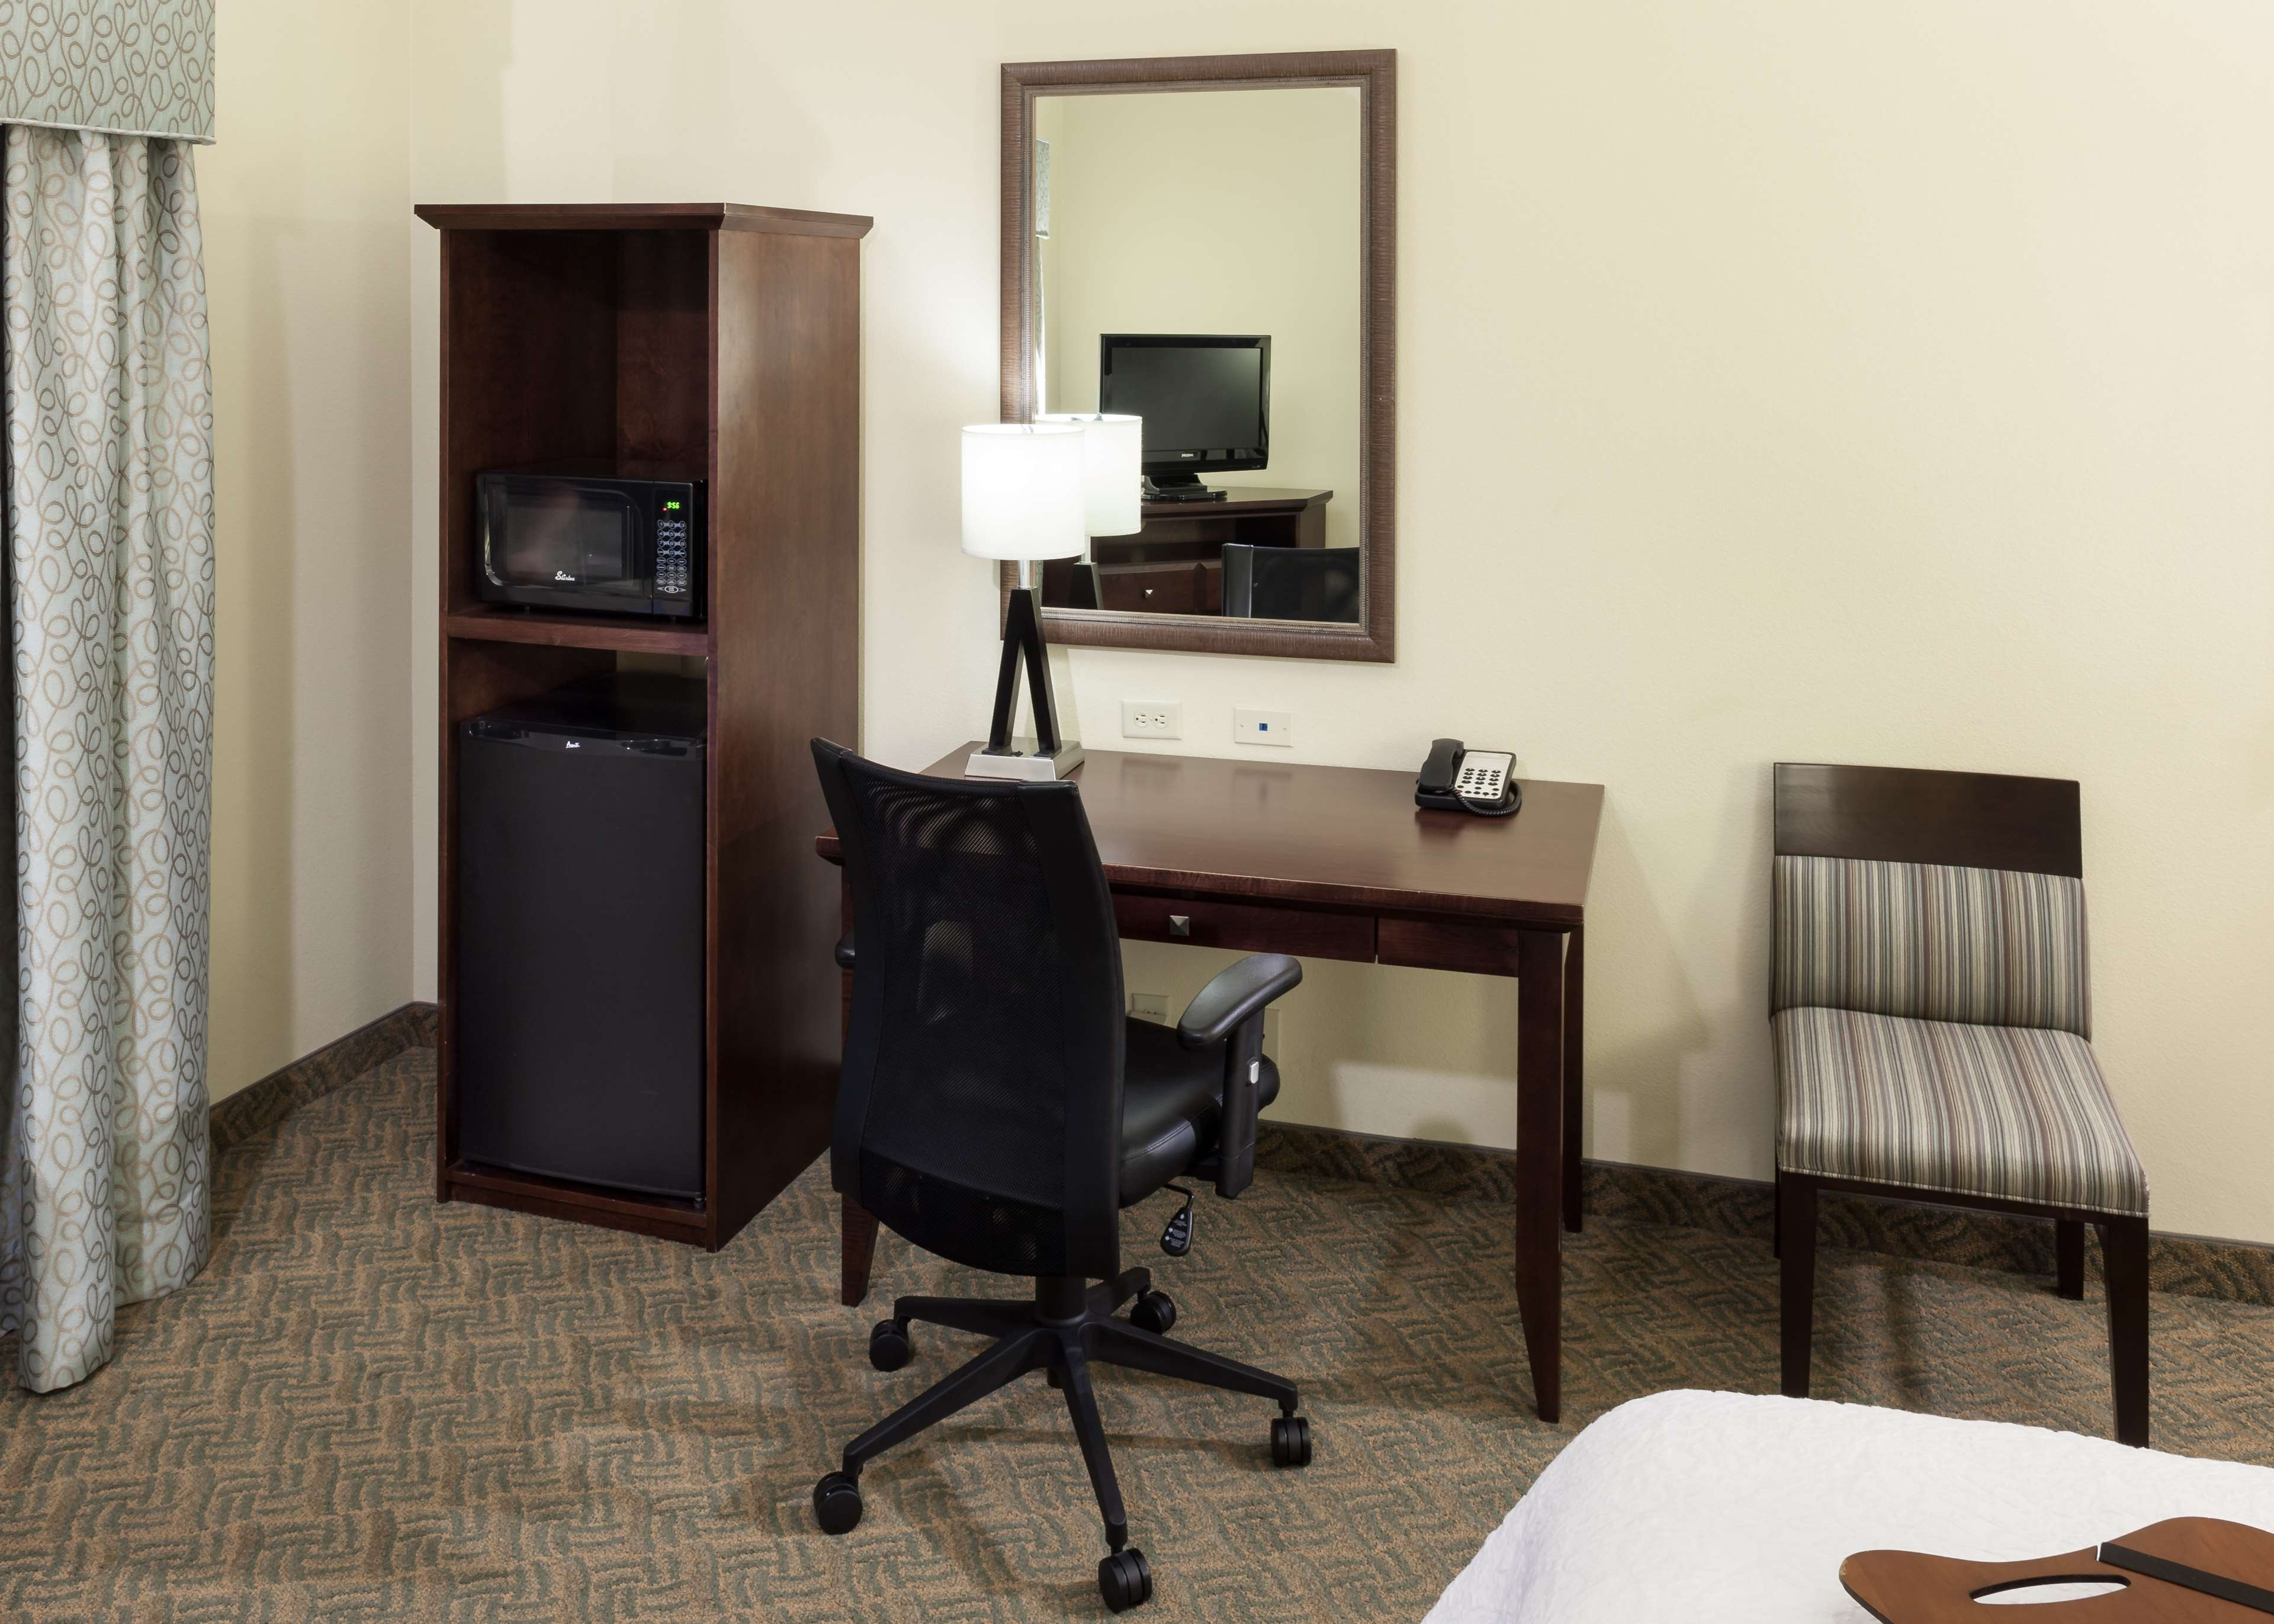 Hampton Inn & Suites Dallas-Arlington-South image 46